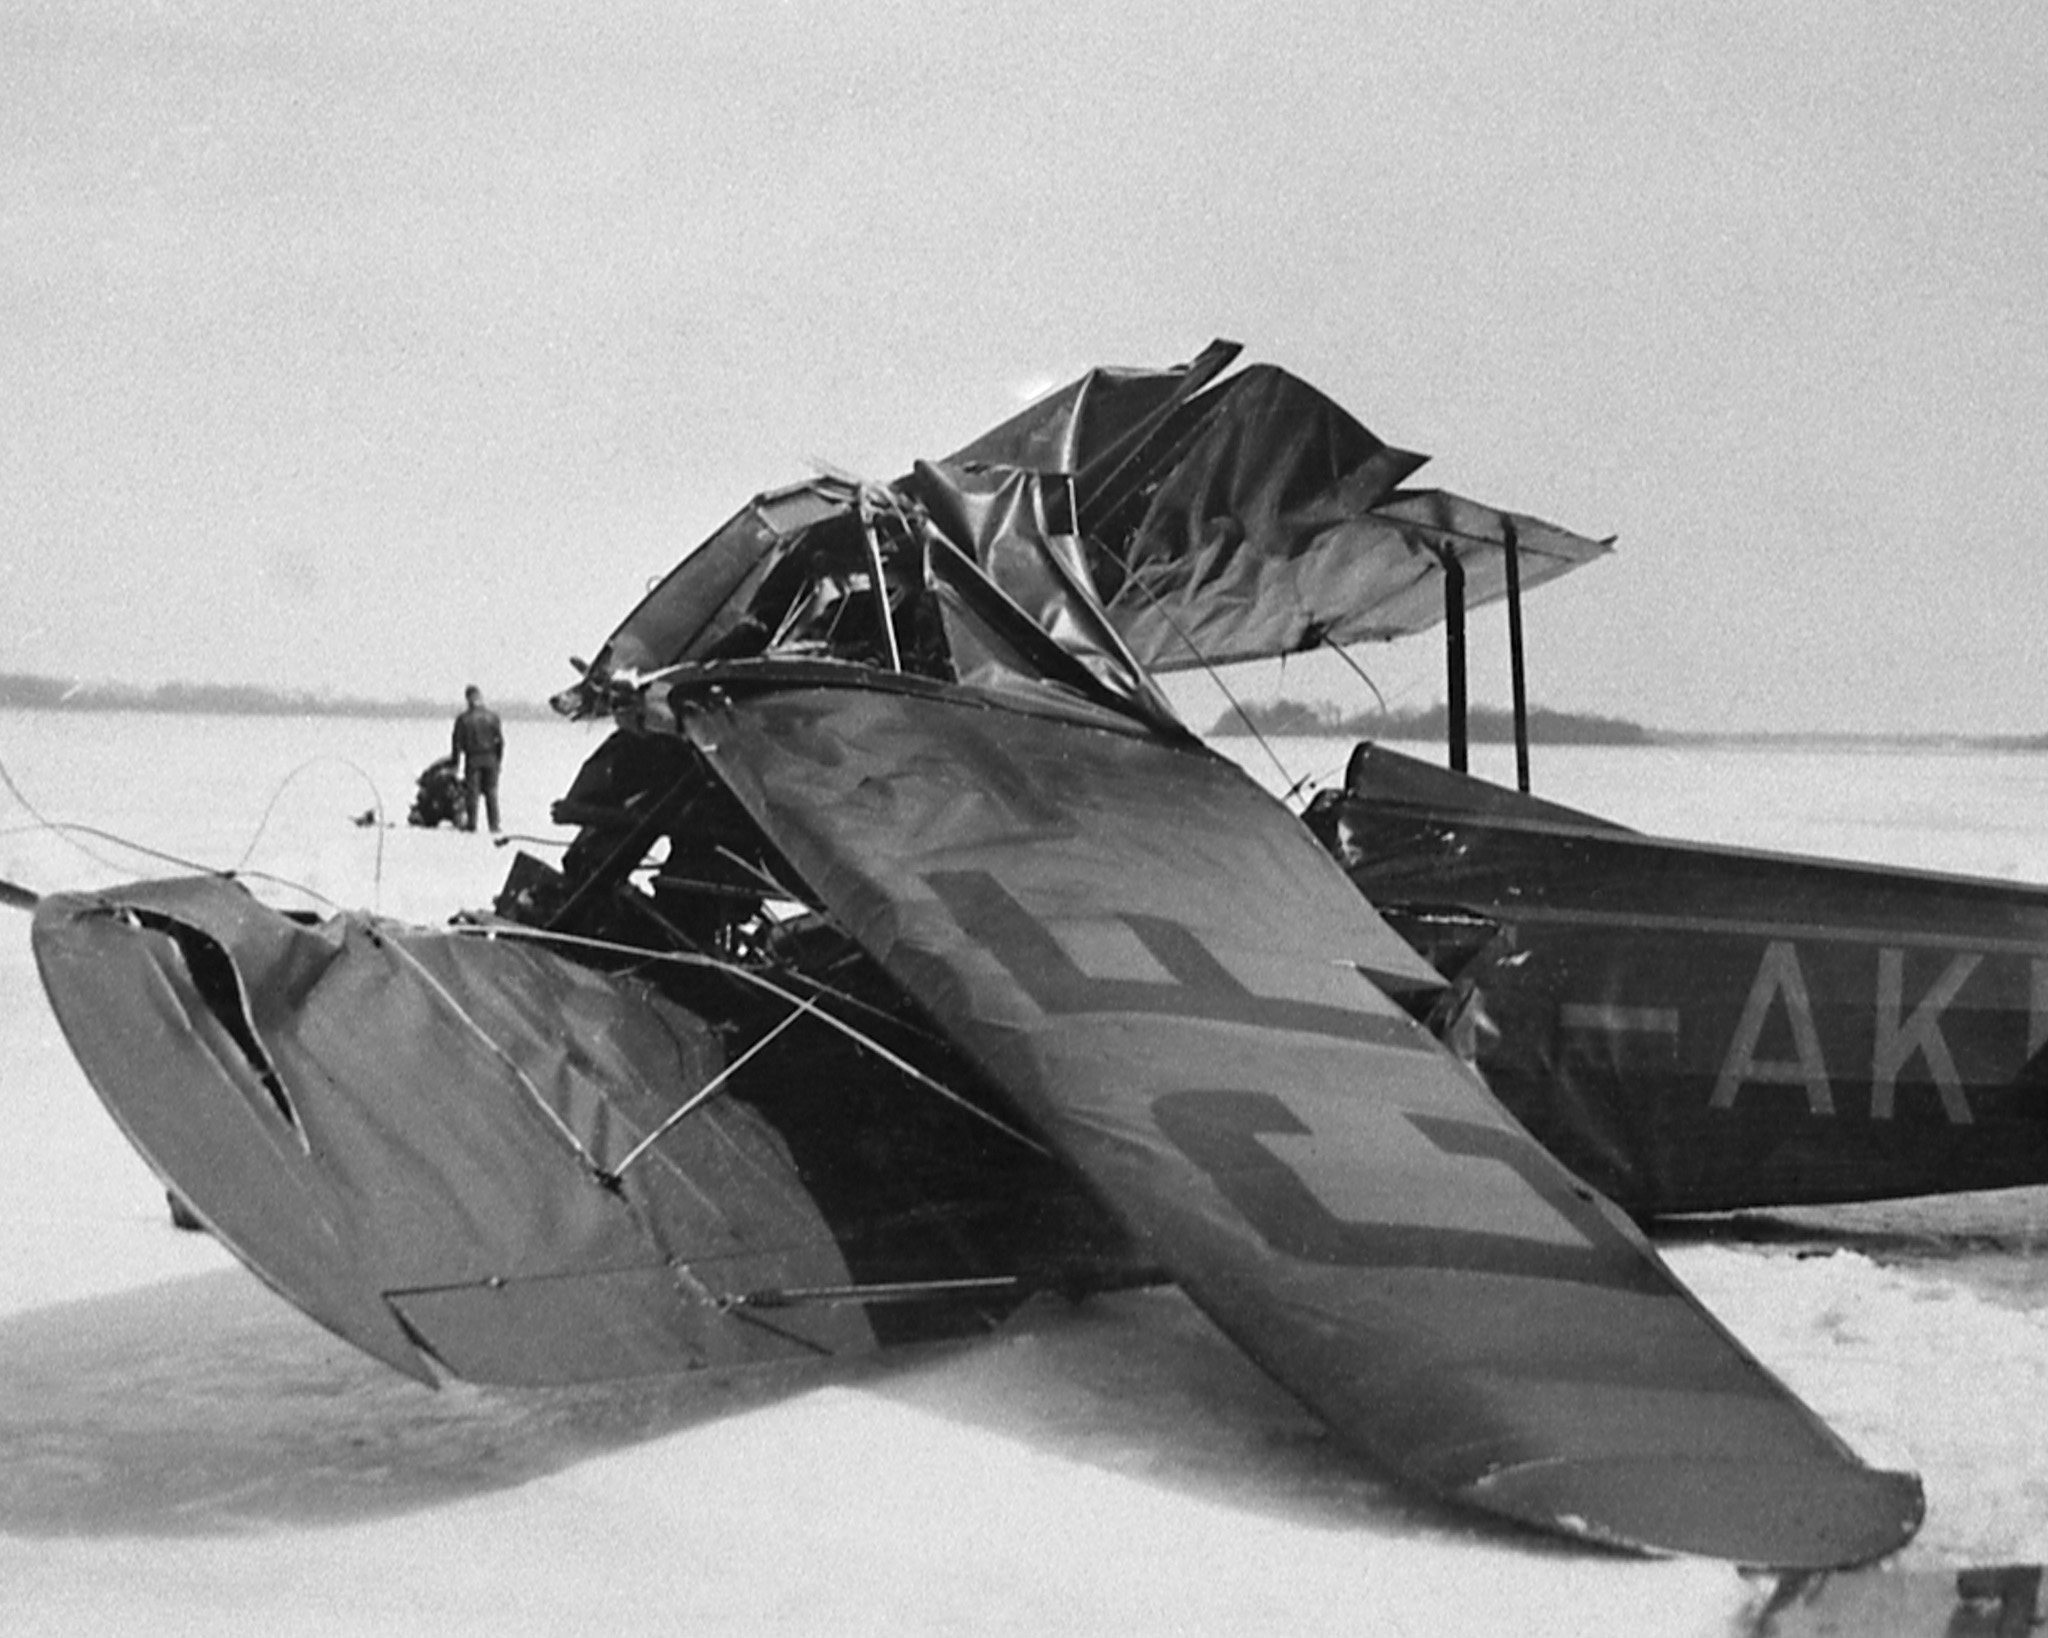 The wreckage of Fairchild KR-21, CF-AKR, on the ice of the Ottawa River on March 12, 1930. Wing Commander (retired) William Barker died in the crash. PHOTO: DND Archives, RE74-165